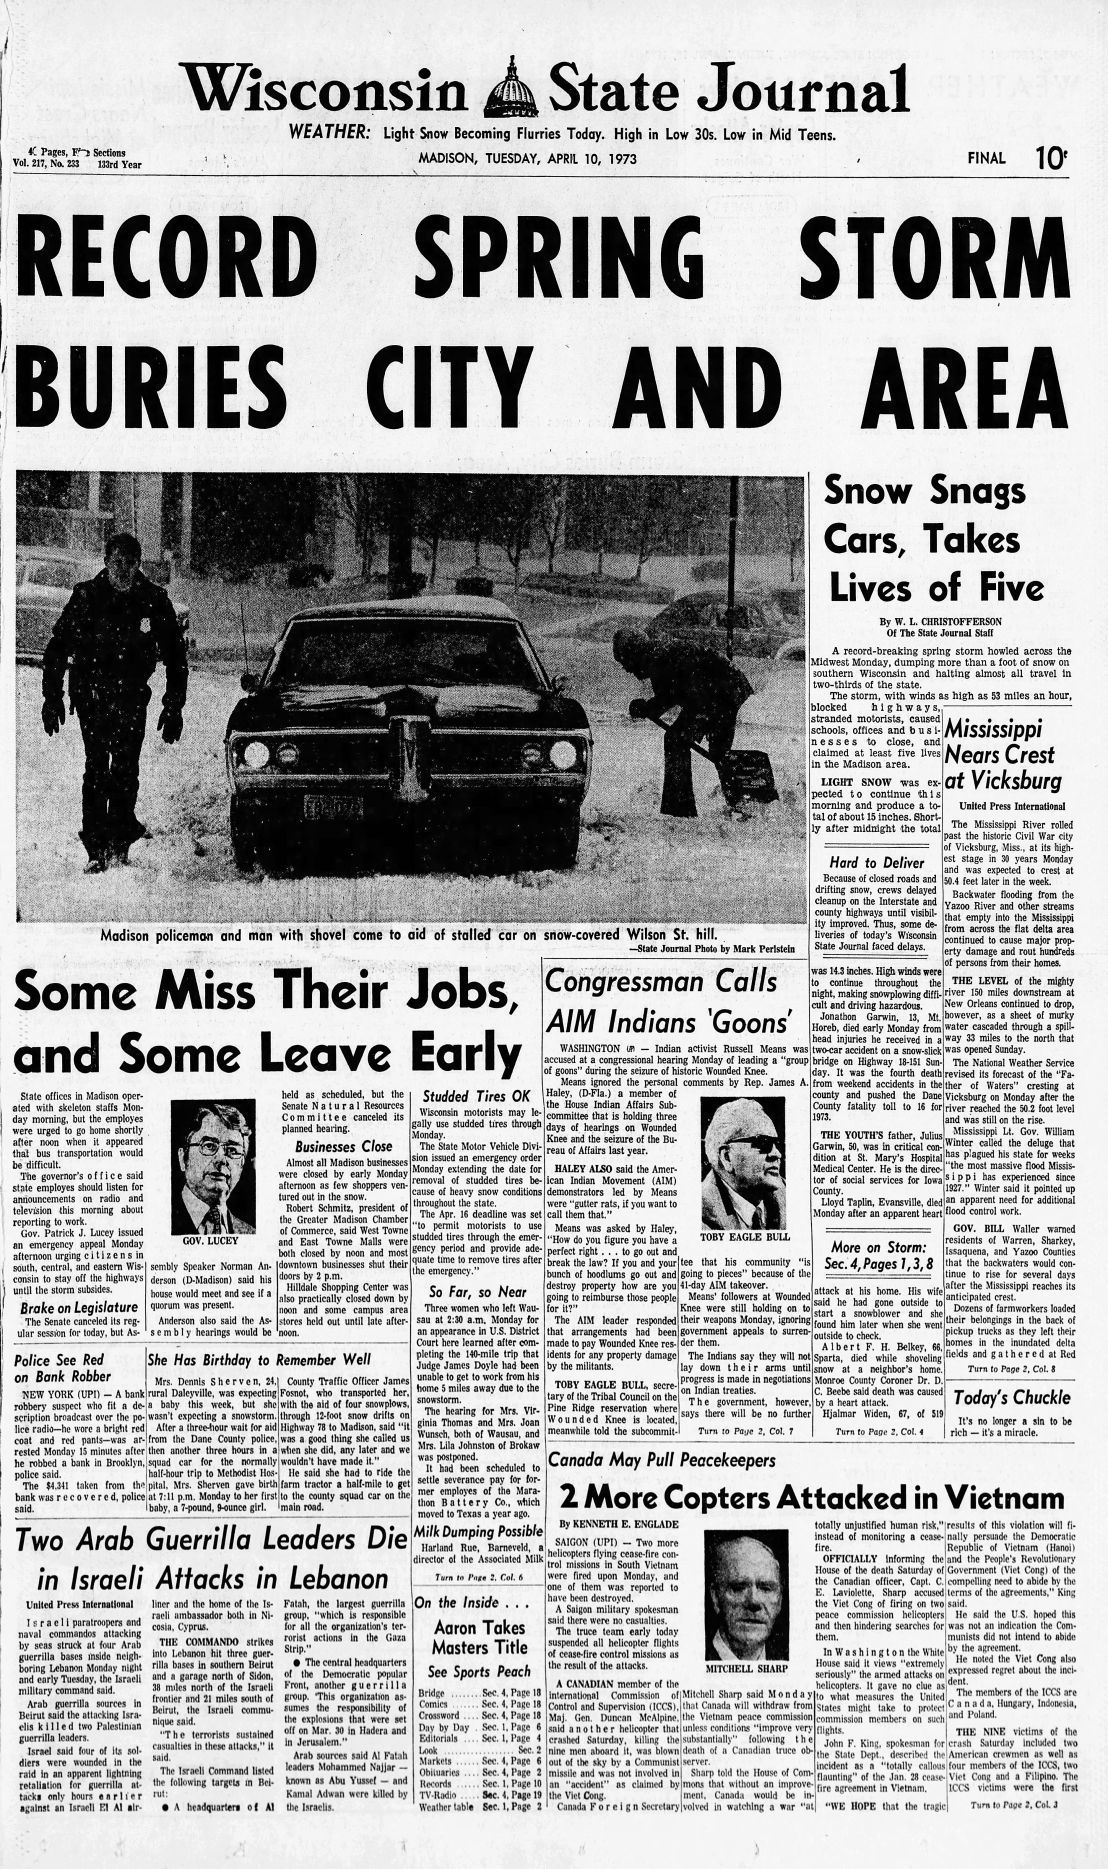 Front page of the Wisconsin State Journal, April 10, 1973